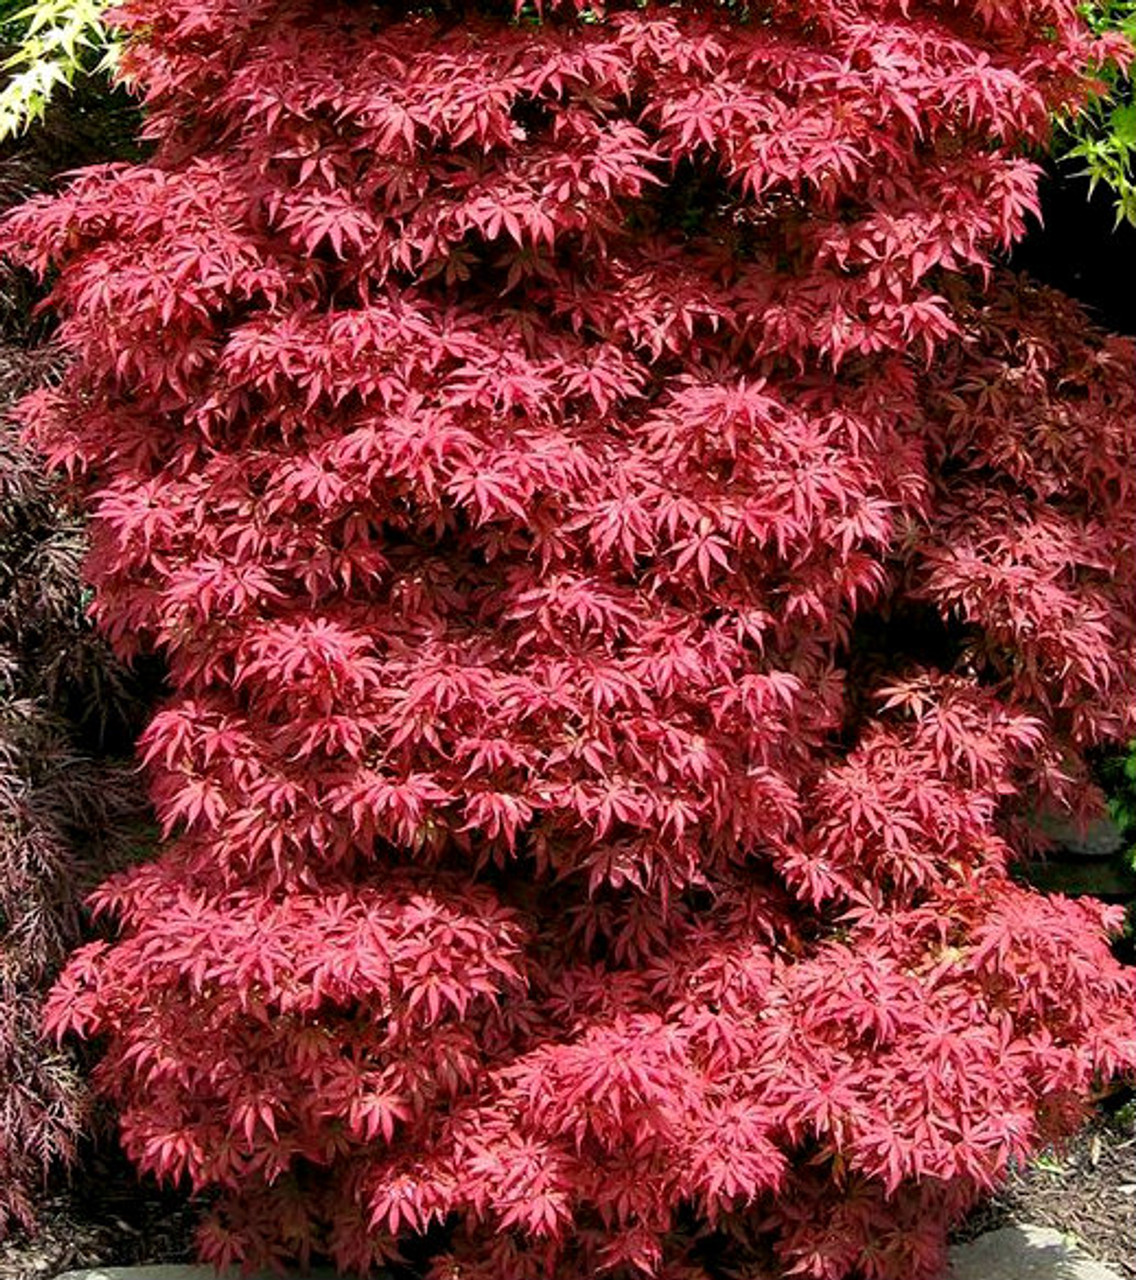 acer palmatum 39 skeeter 39 s broom 39 red japanese maple tree. Black Bedroom Furniture Sets. Home Design Ideas